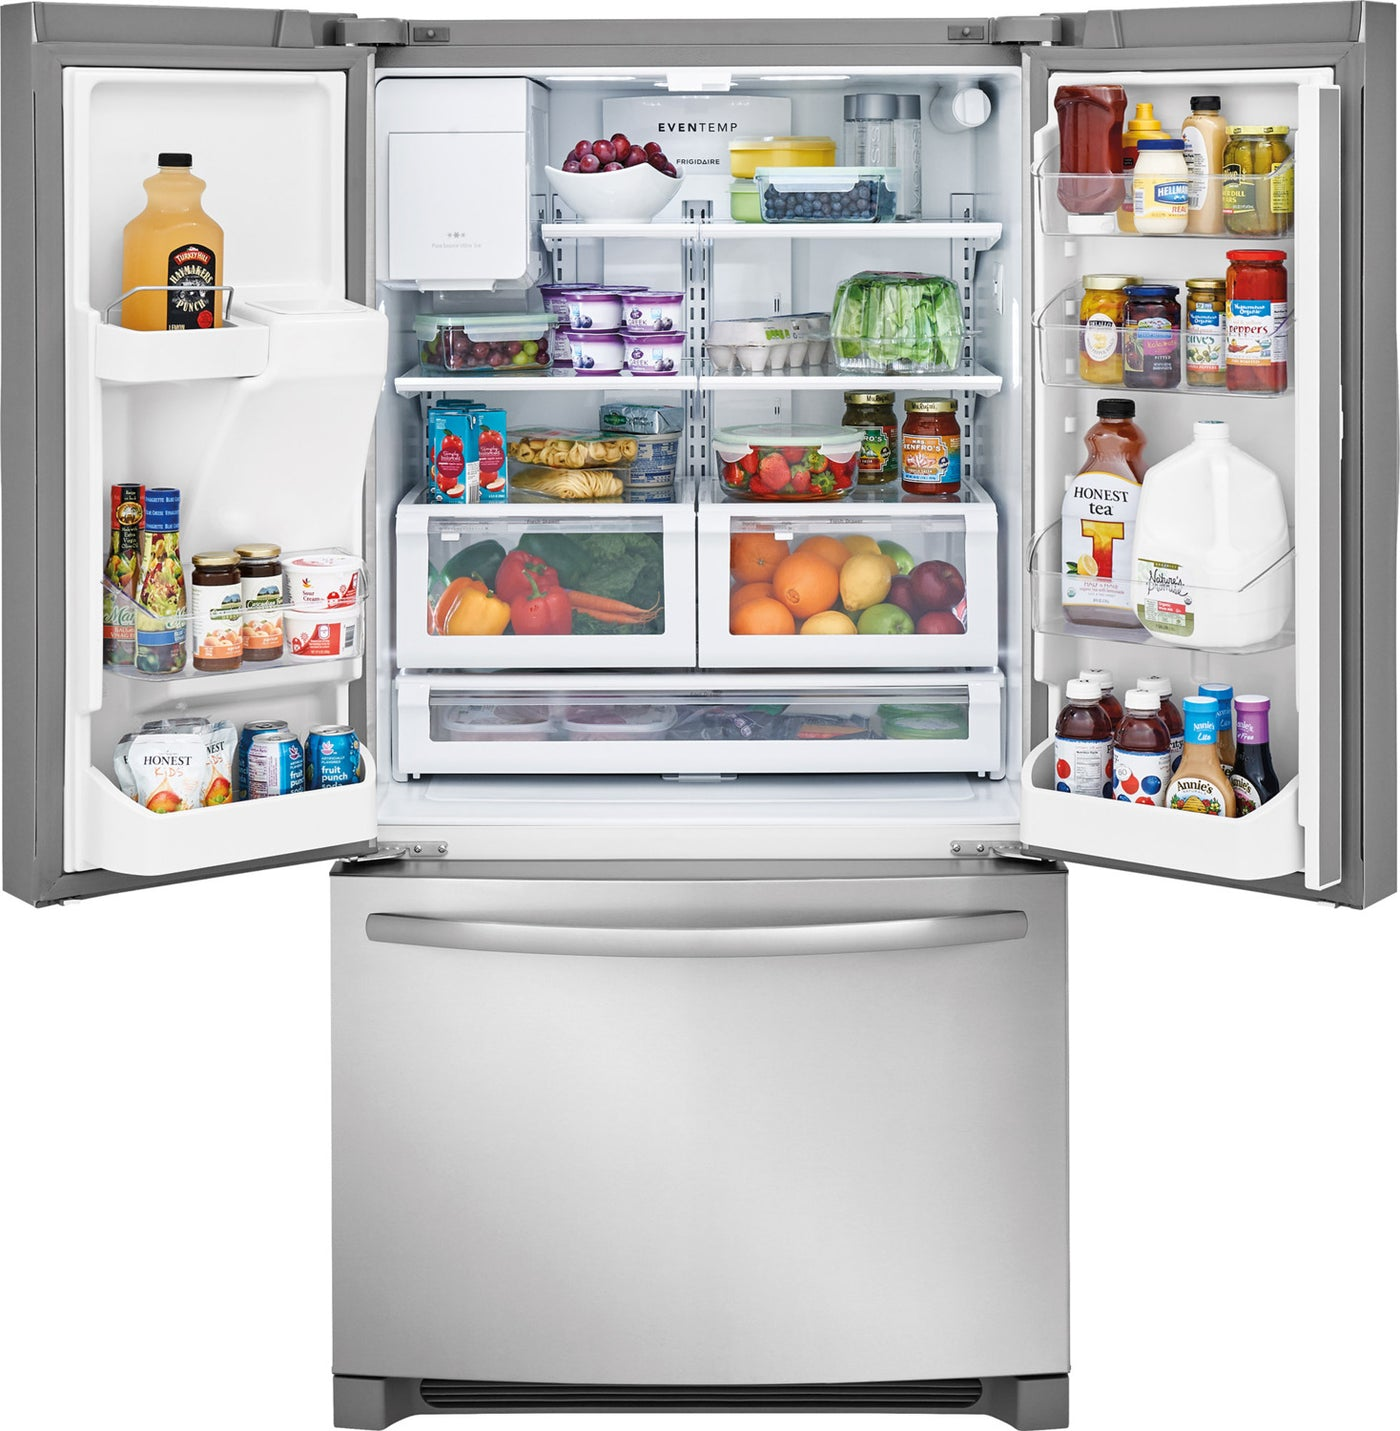 Frigidaire Stainless Steel French Door Refrigerator 268 Cu Ft